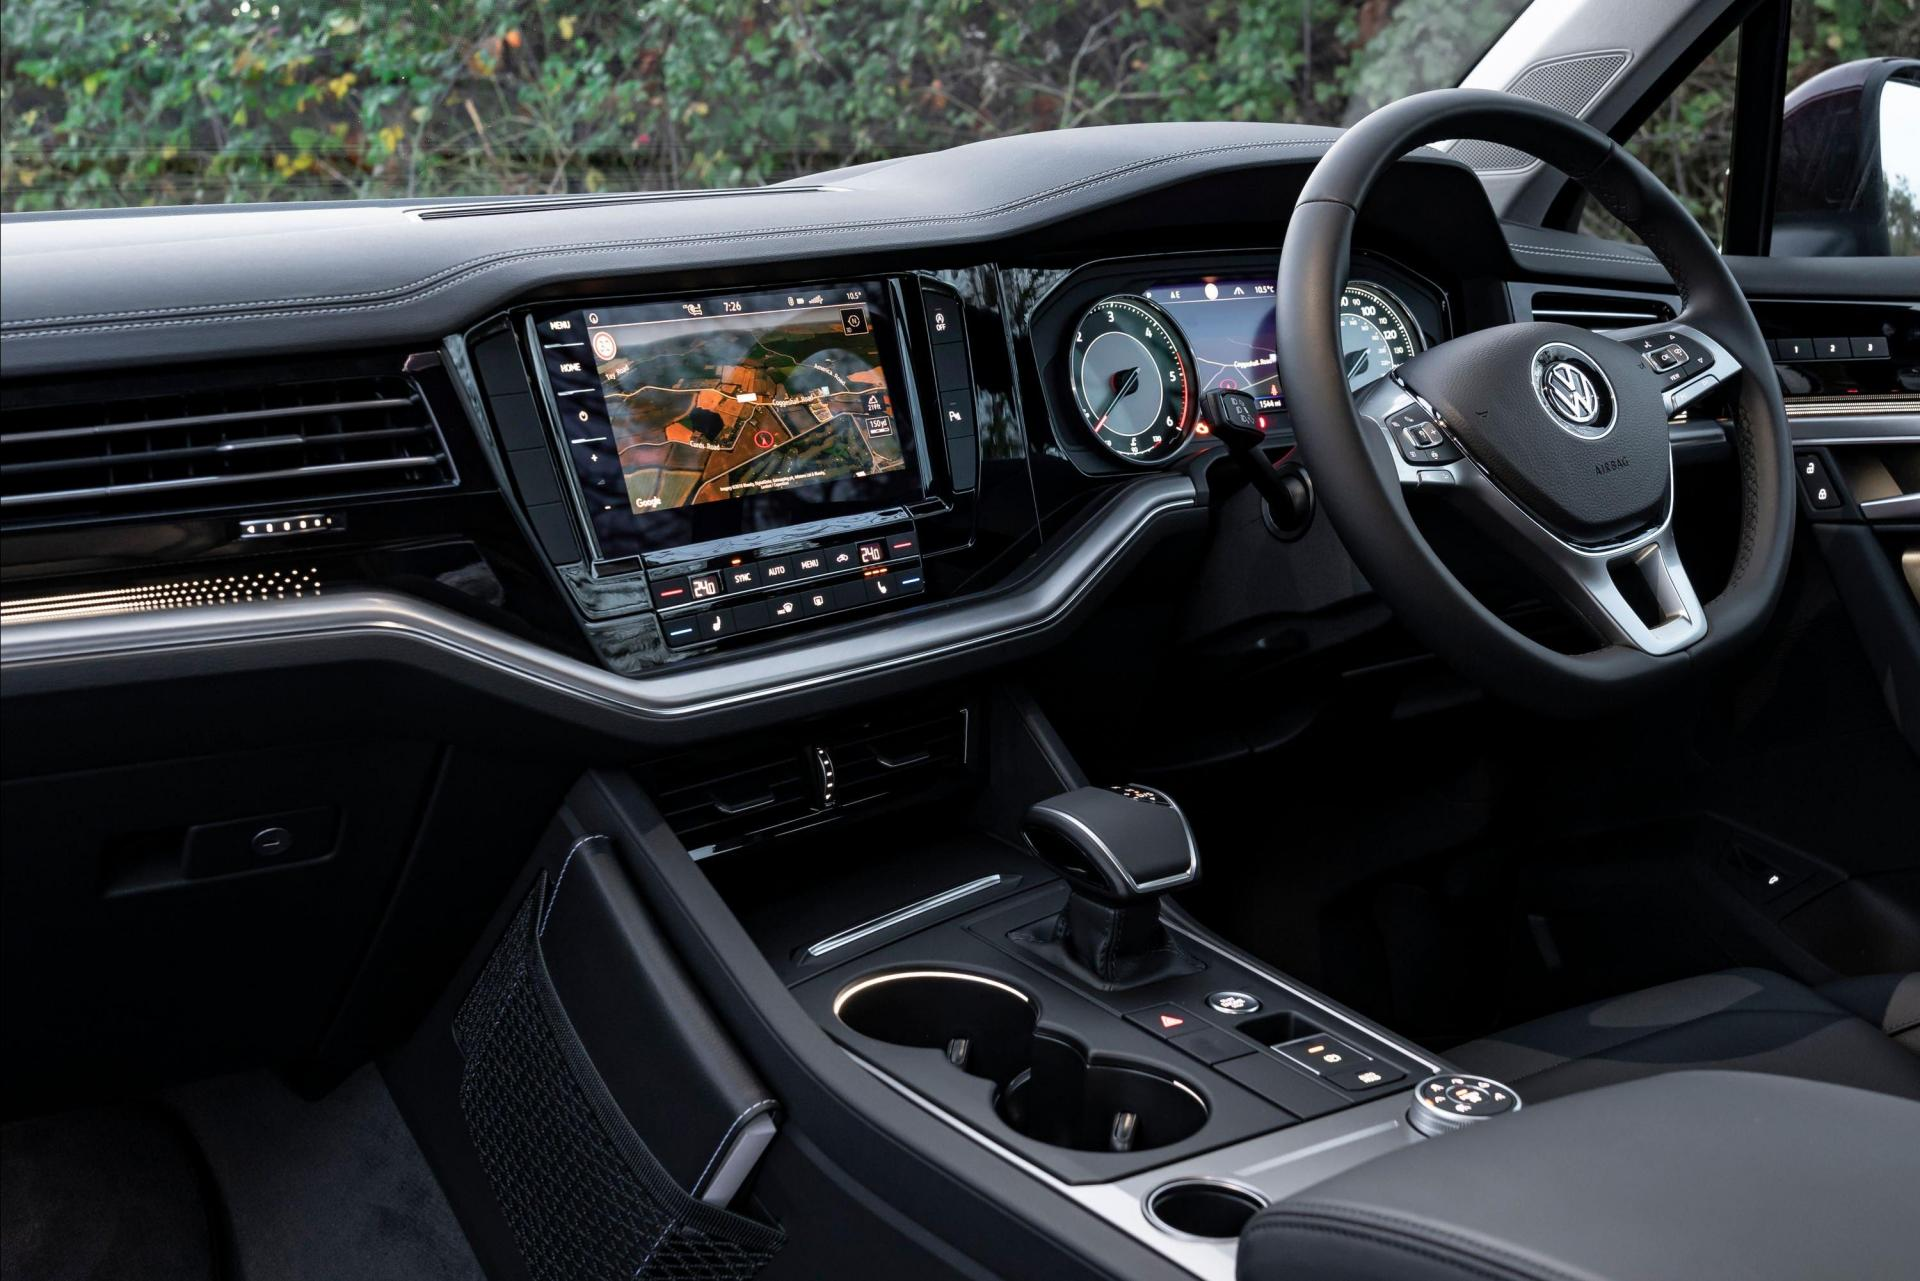 A large infotainment screen dominates the Touareg's cabin.